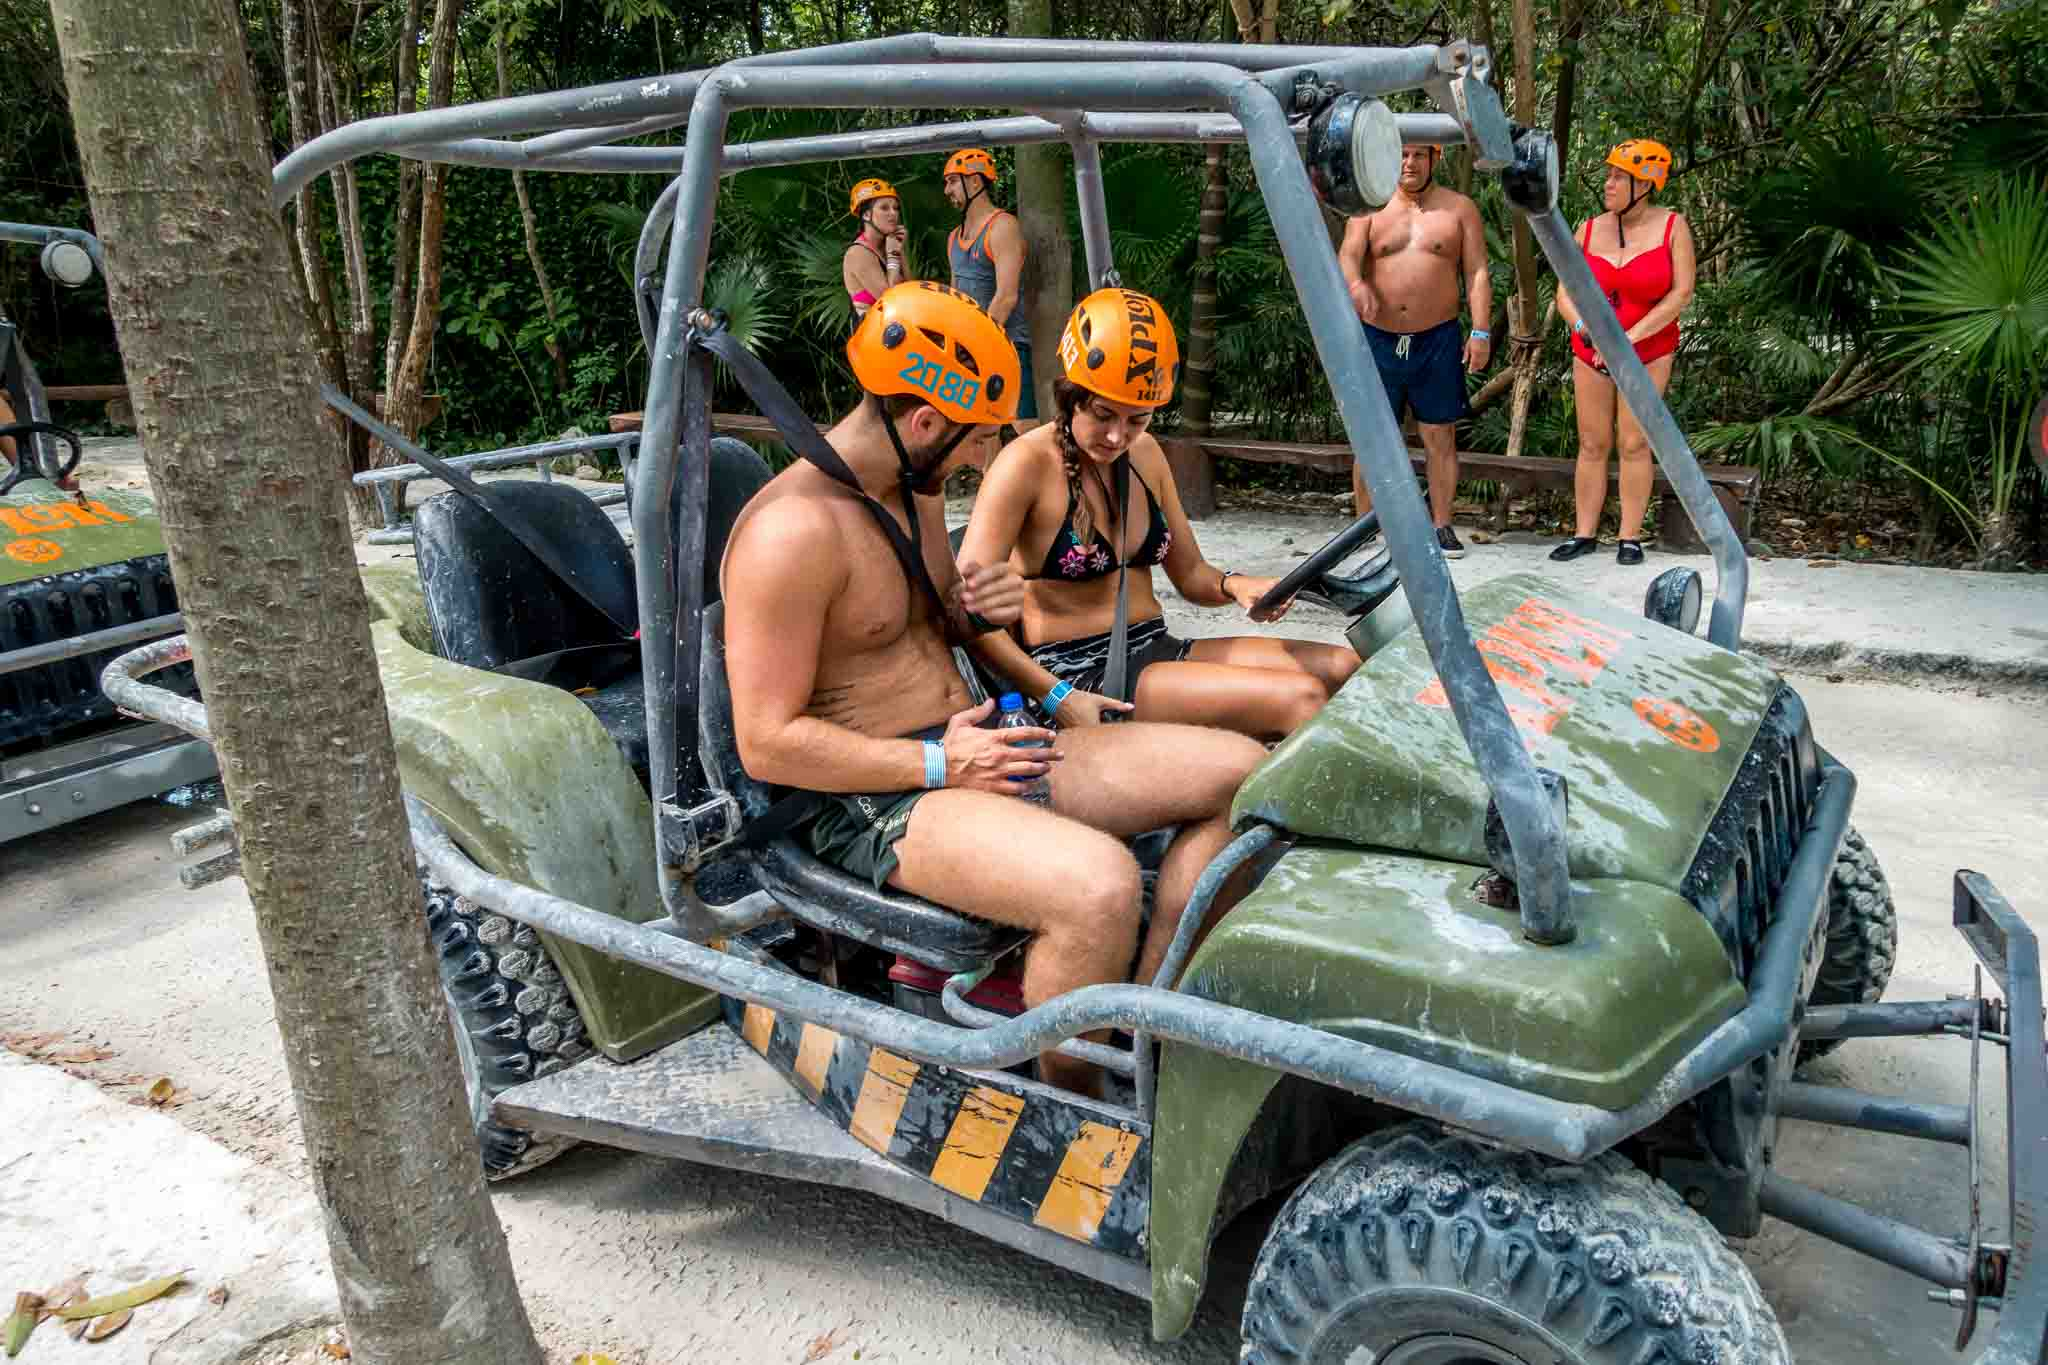 Riding in amphibious vehicles is one of the popular activities at Xplor Playa del Carmen, Mexico